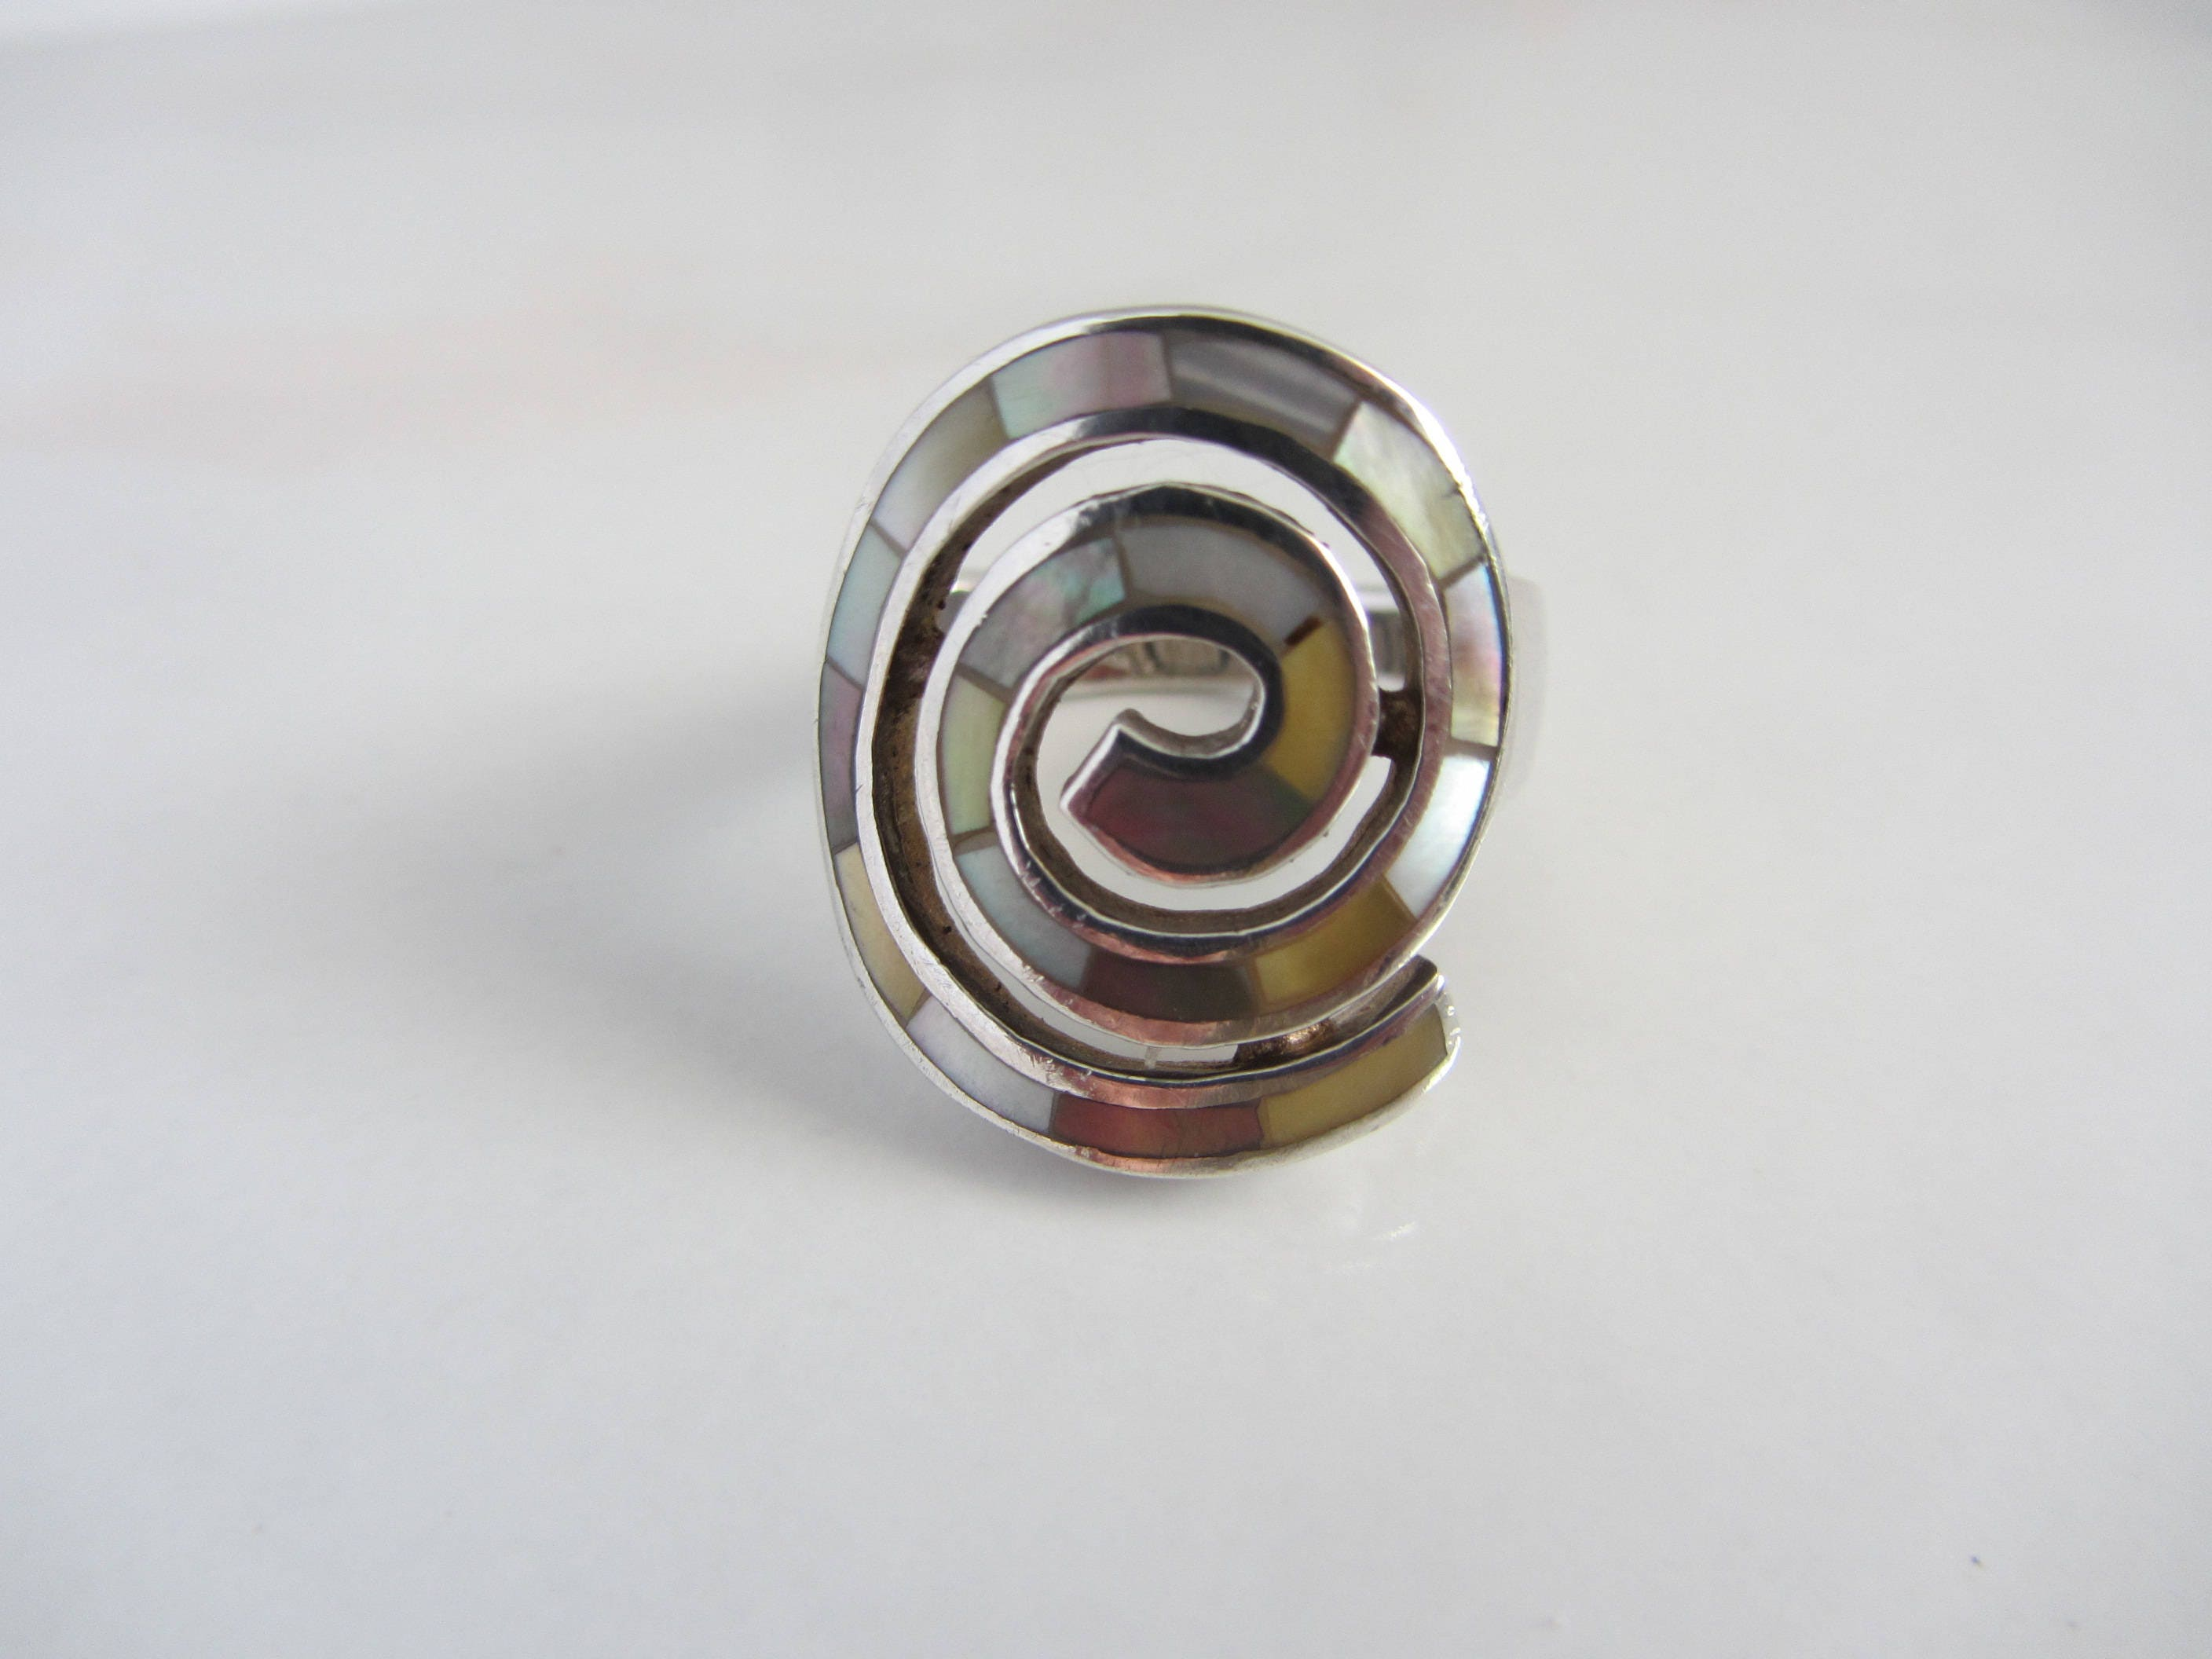 sterling silver spiral ring with inlay abalone and iridescent